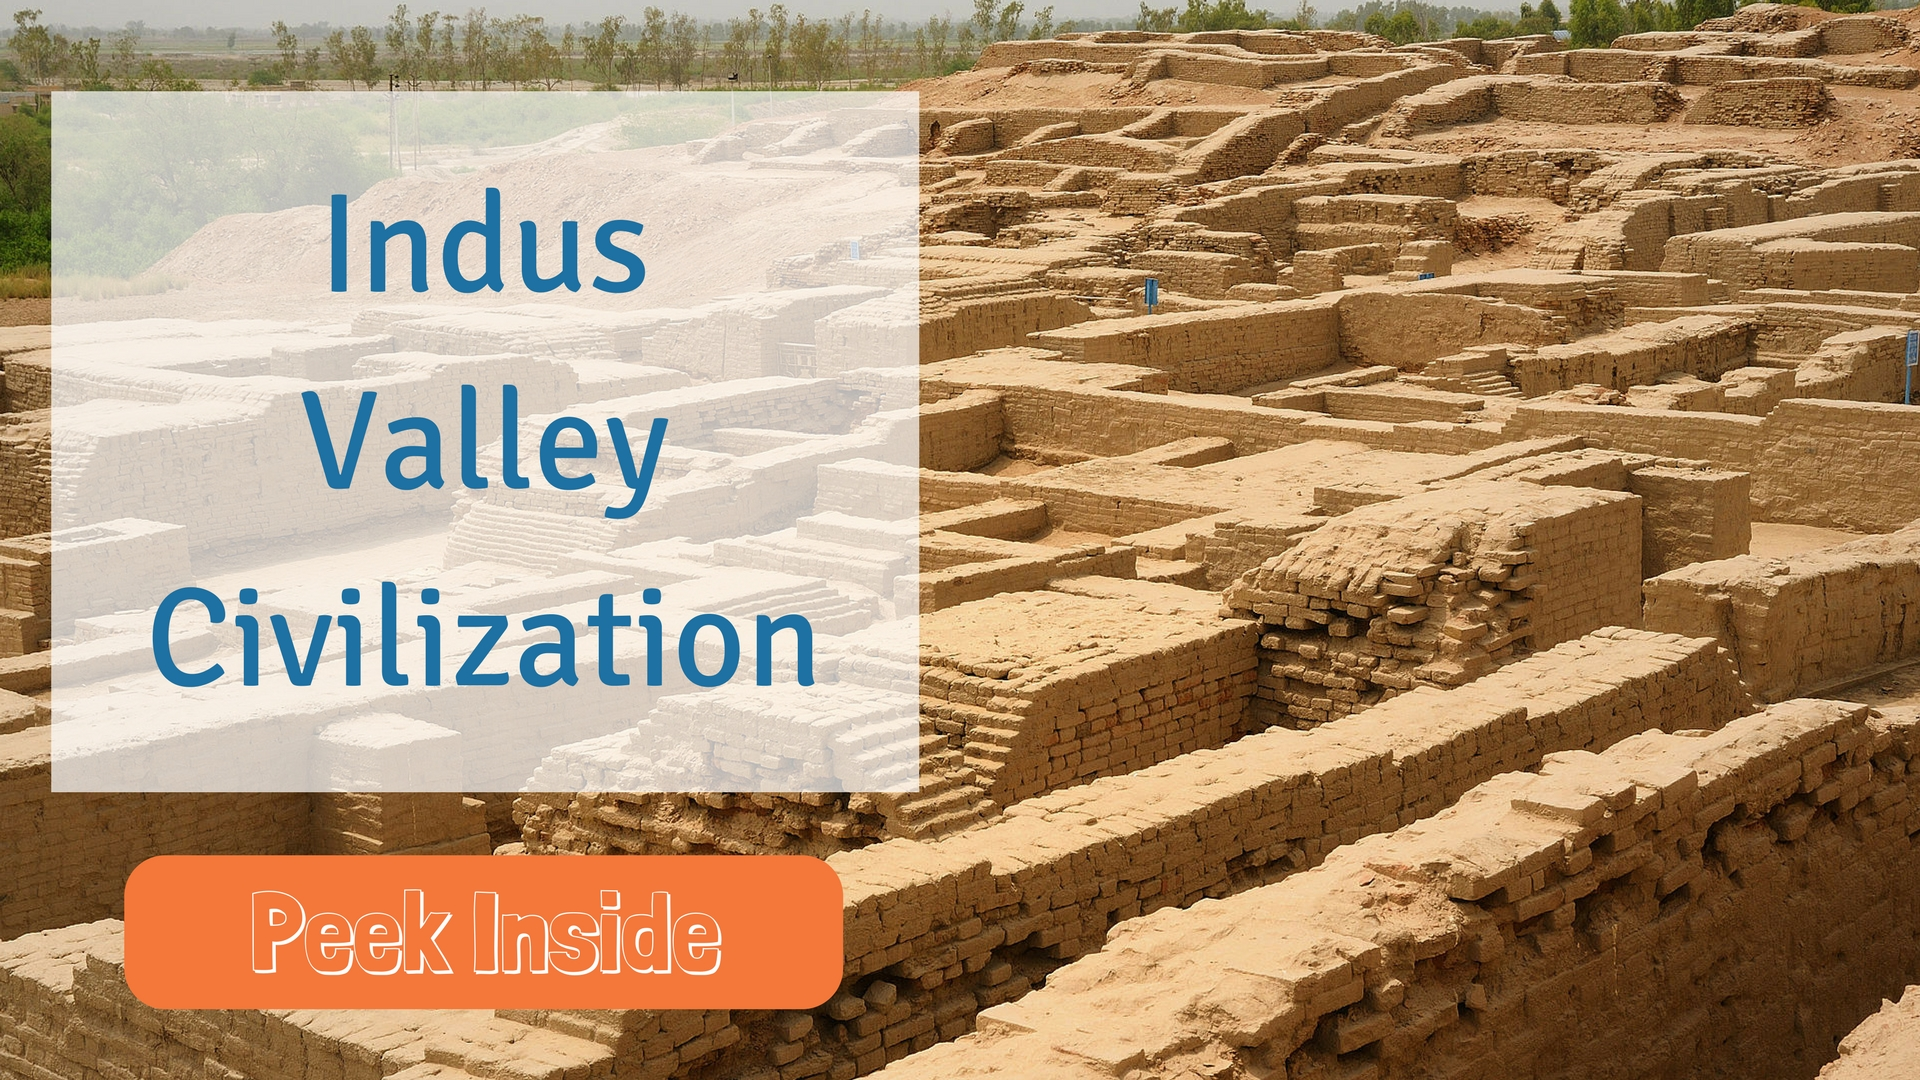 Explore Indus Valley Civilization with Kids